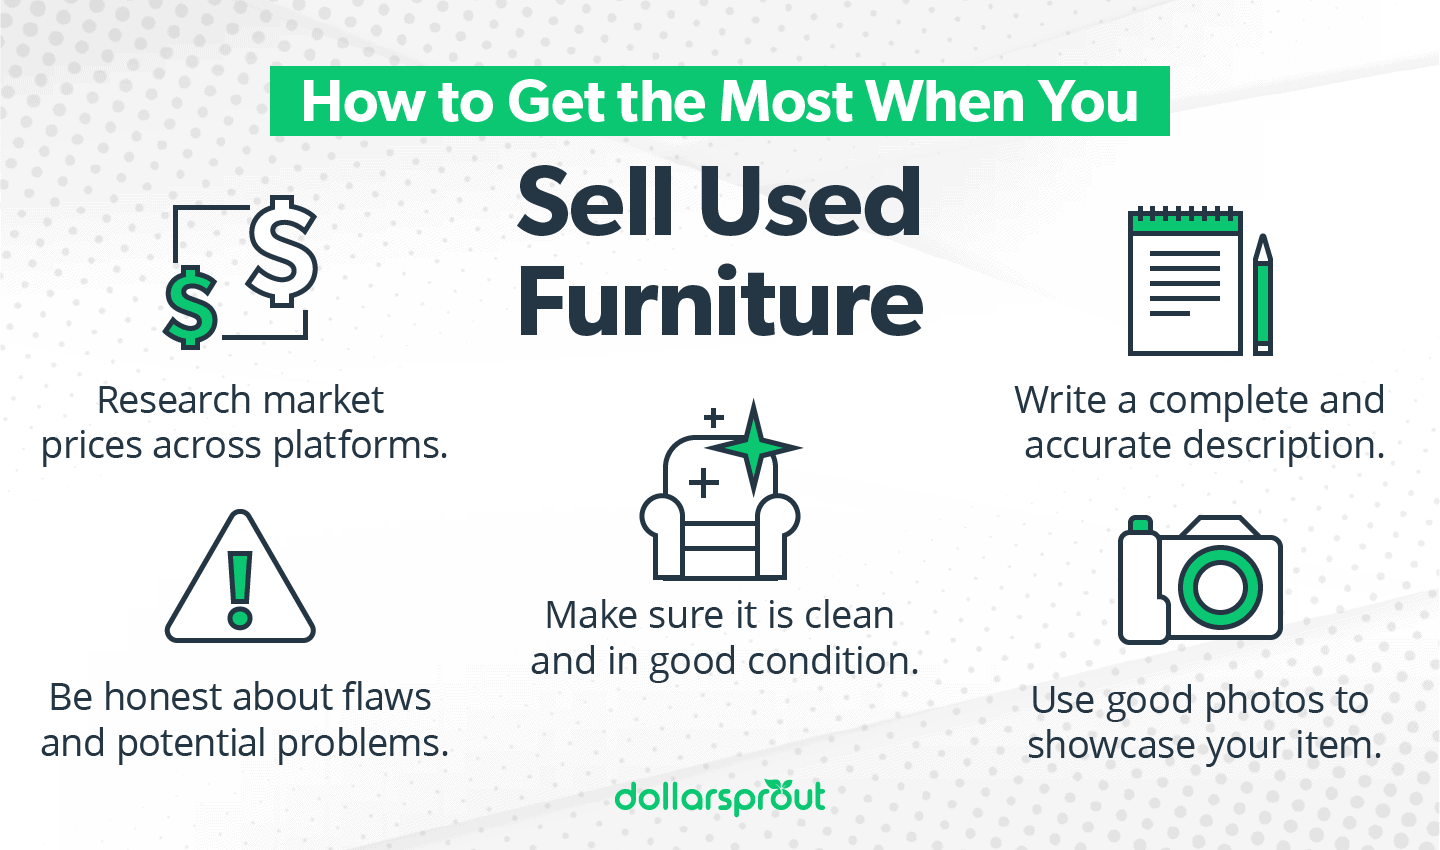 How to get the most for your used furniture